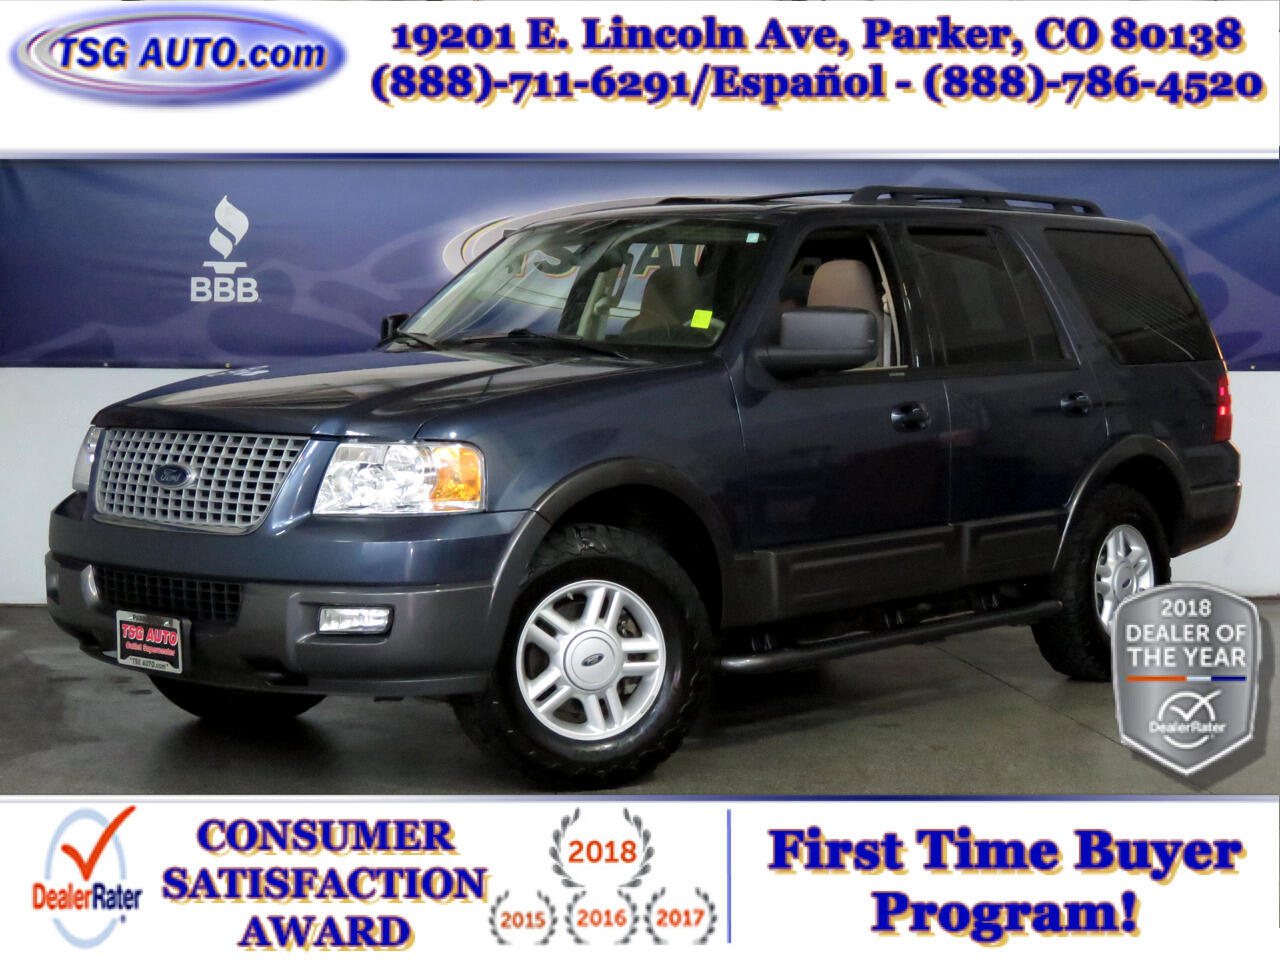 2005 Ford Expedition 5.4L XLT 4WD